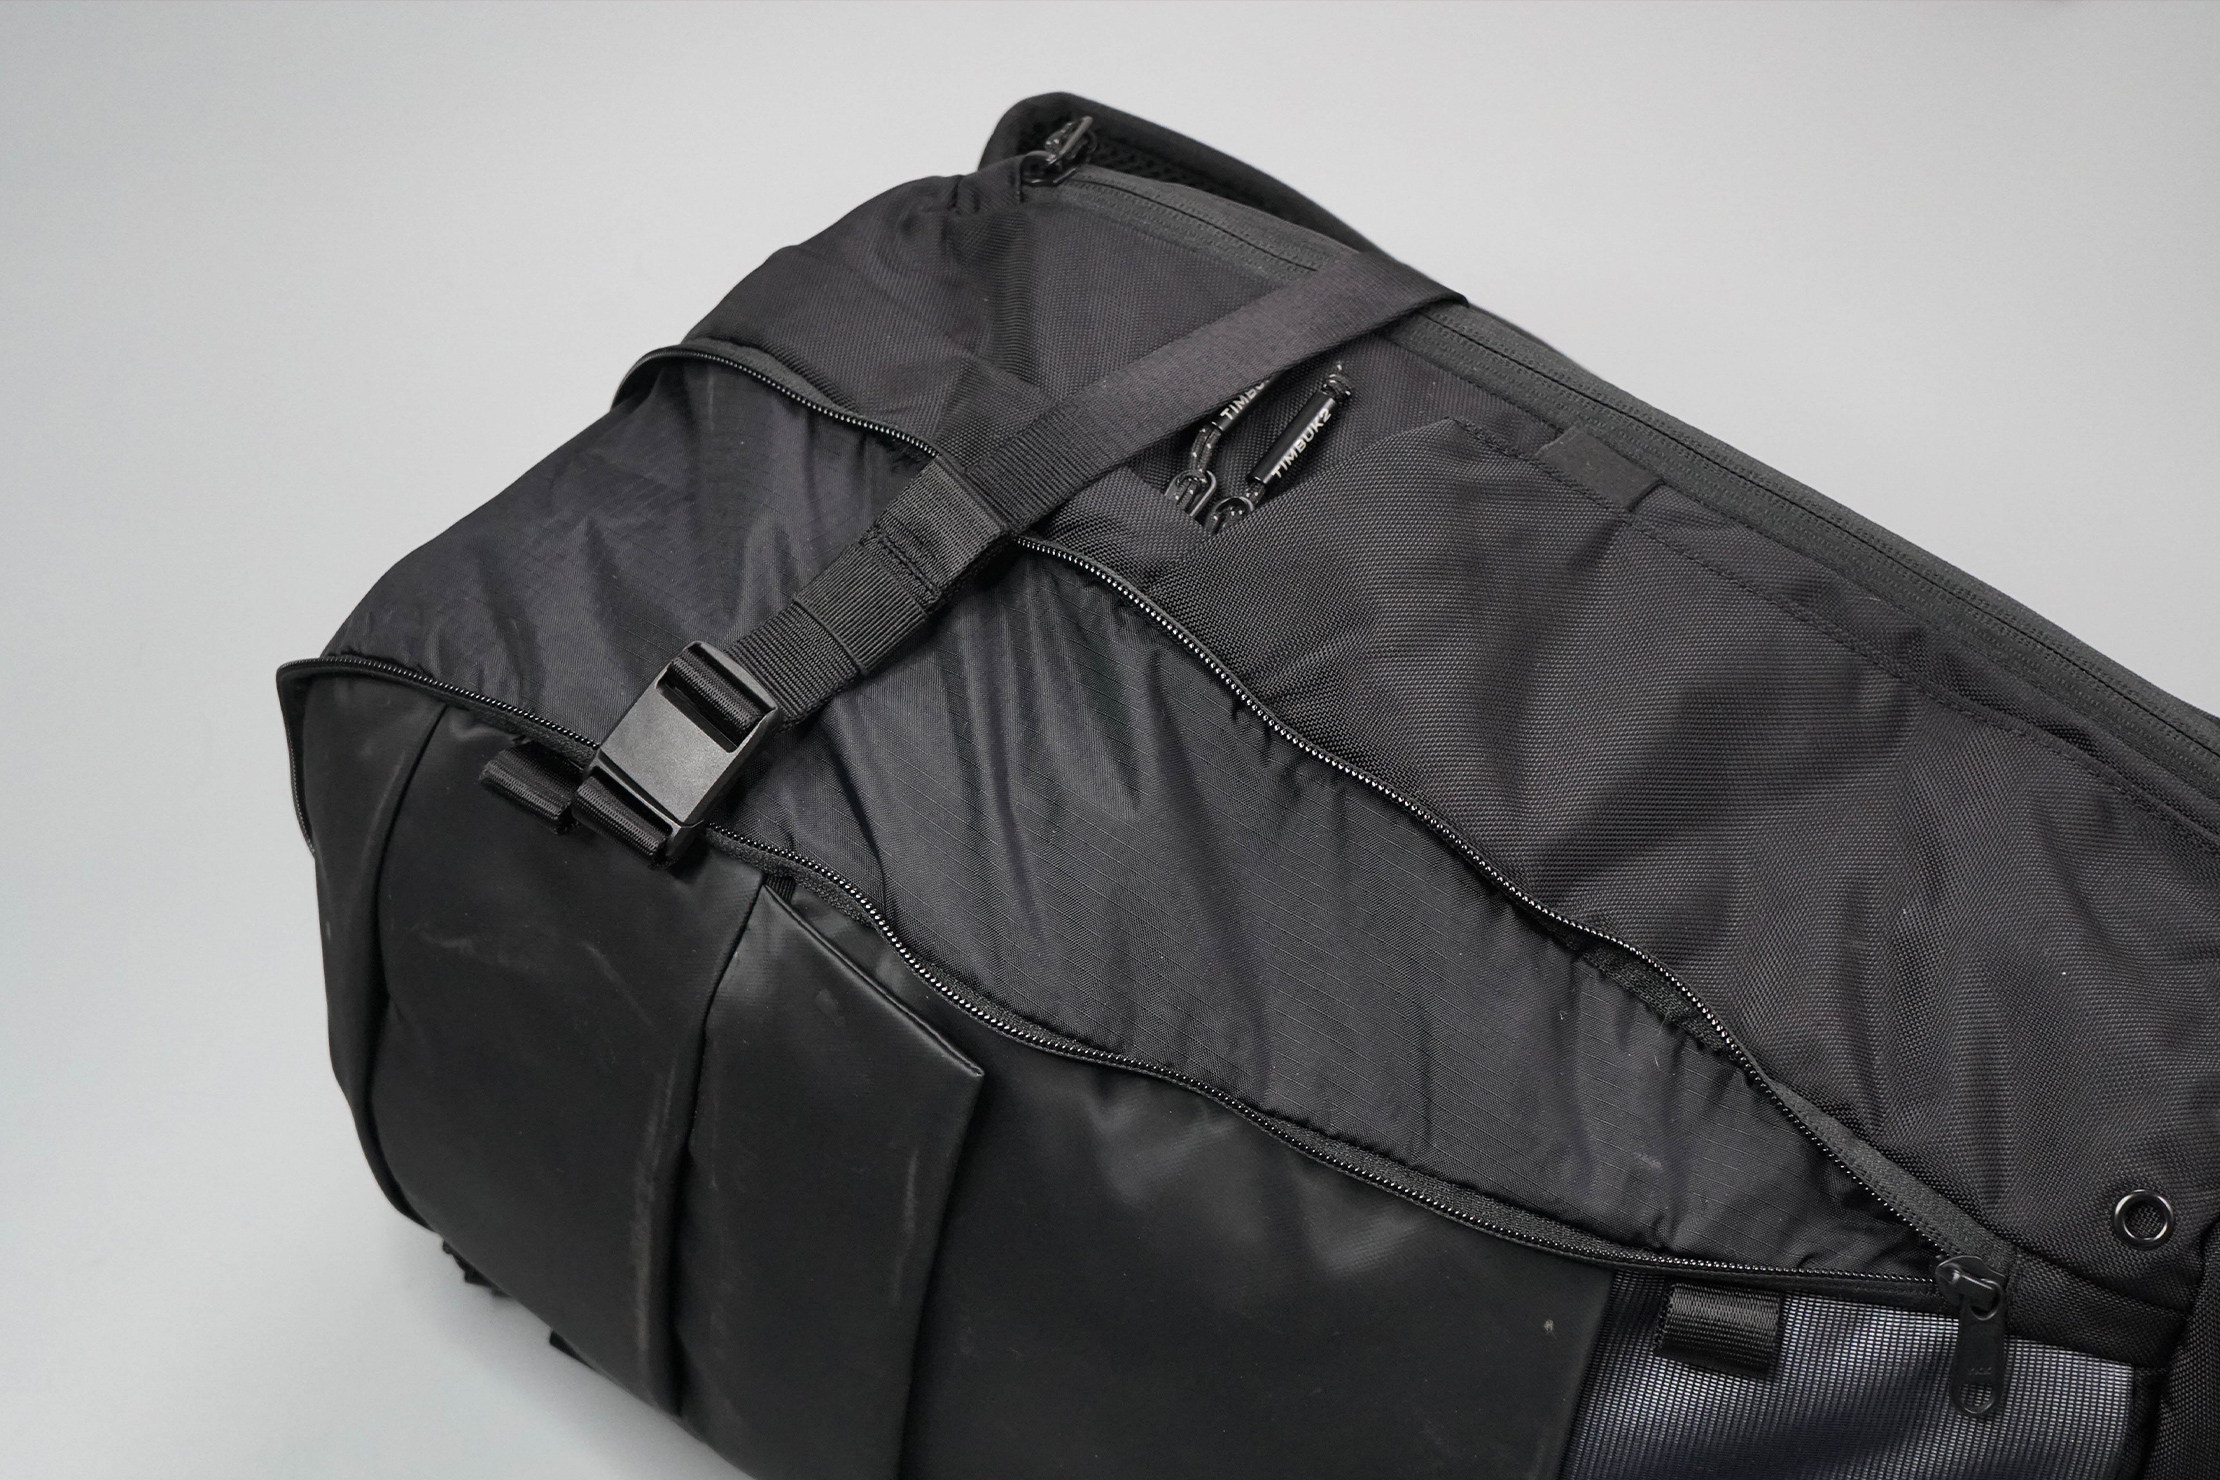 Timbuk2 Parker Commuter Backpack Expanded